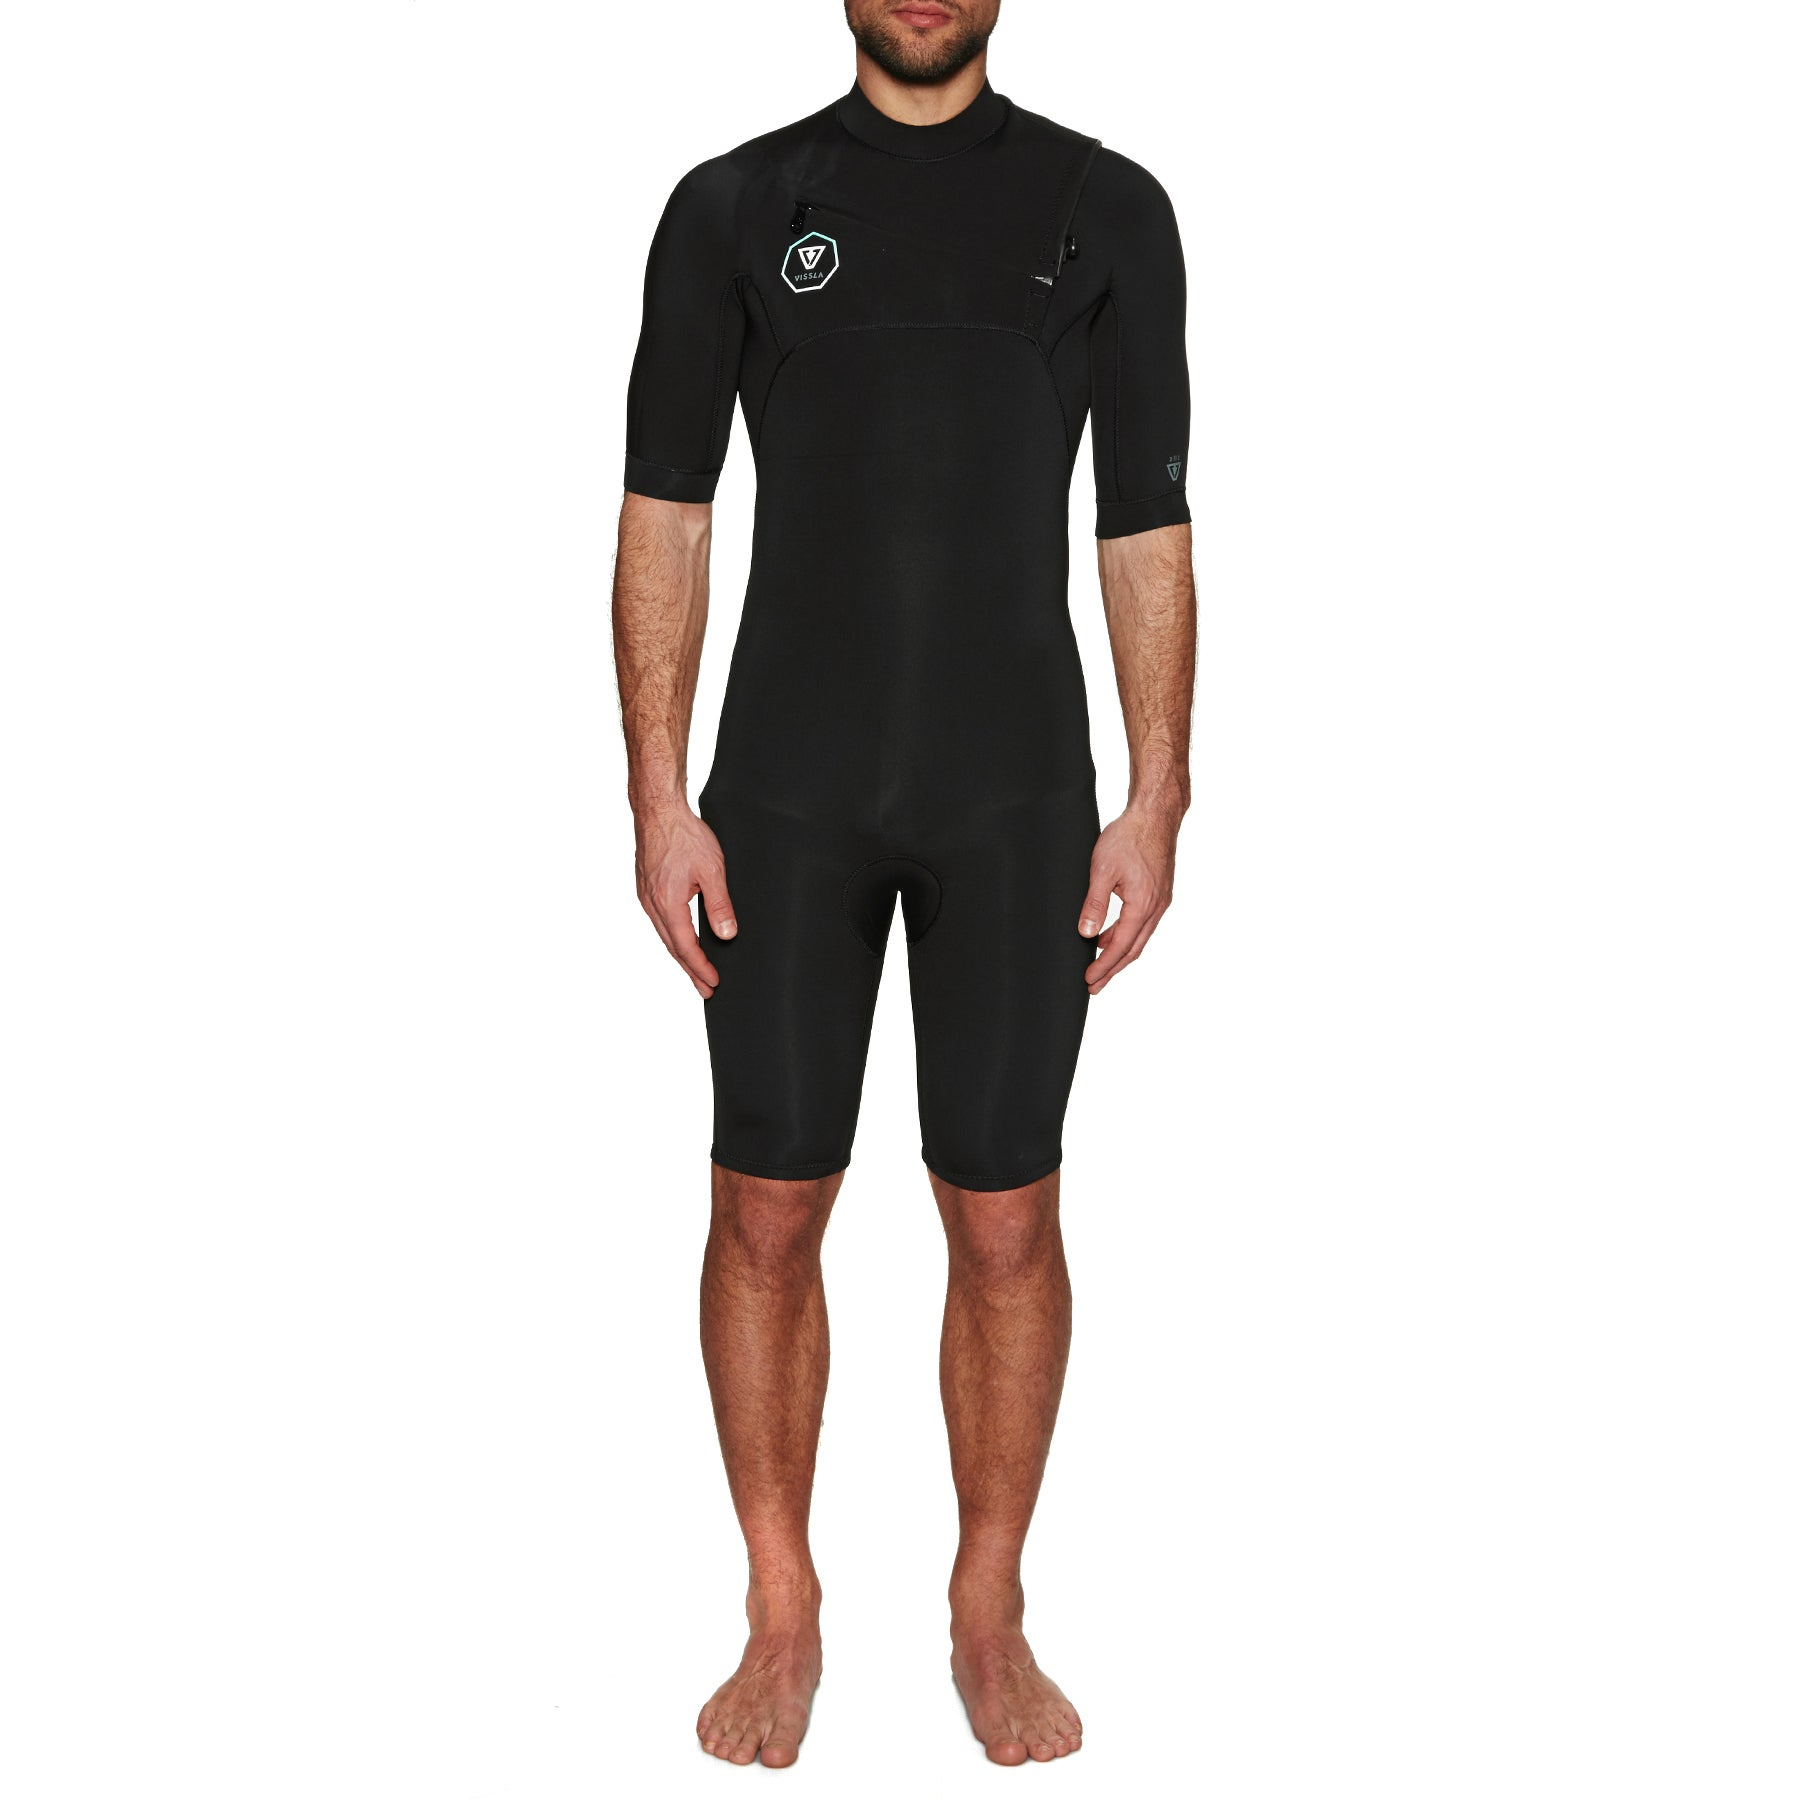 Vissla 7 Seas 2mm 2019 Chest Zip Shorty Wetsuit